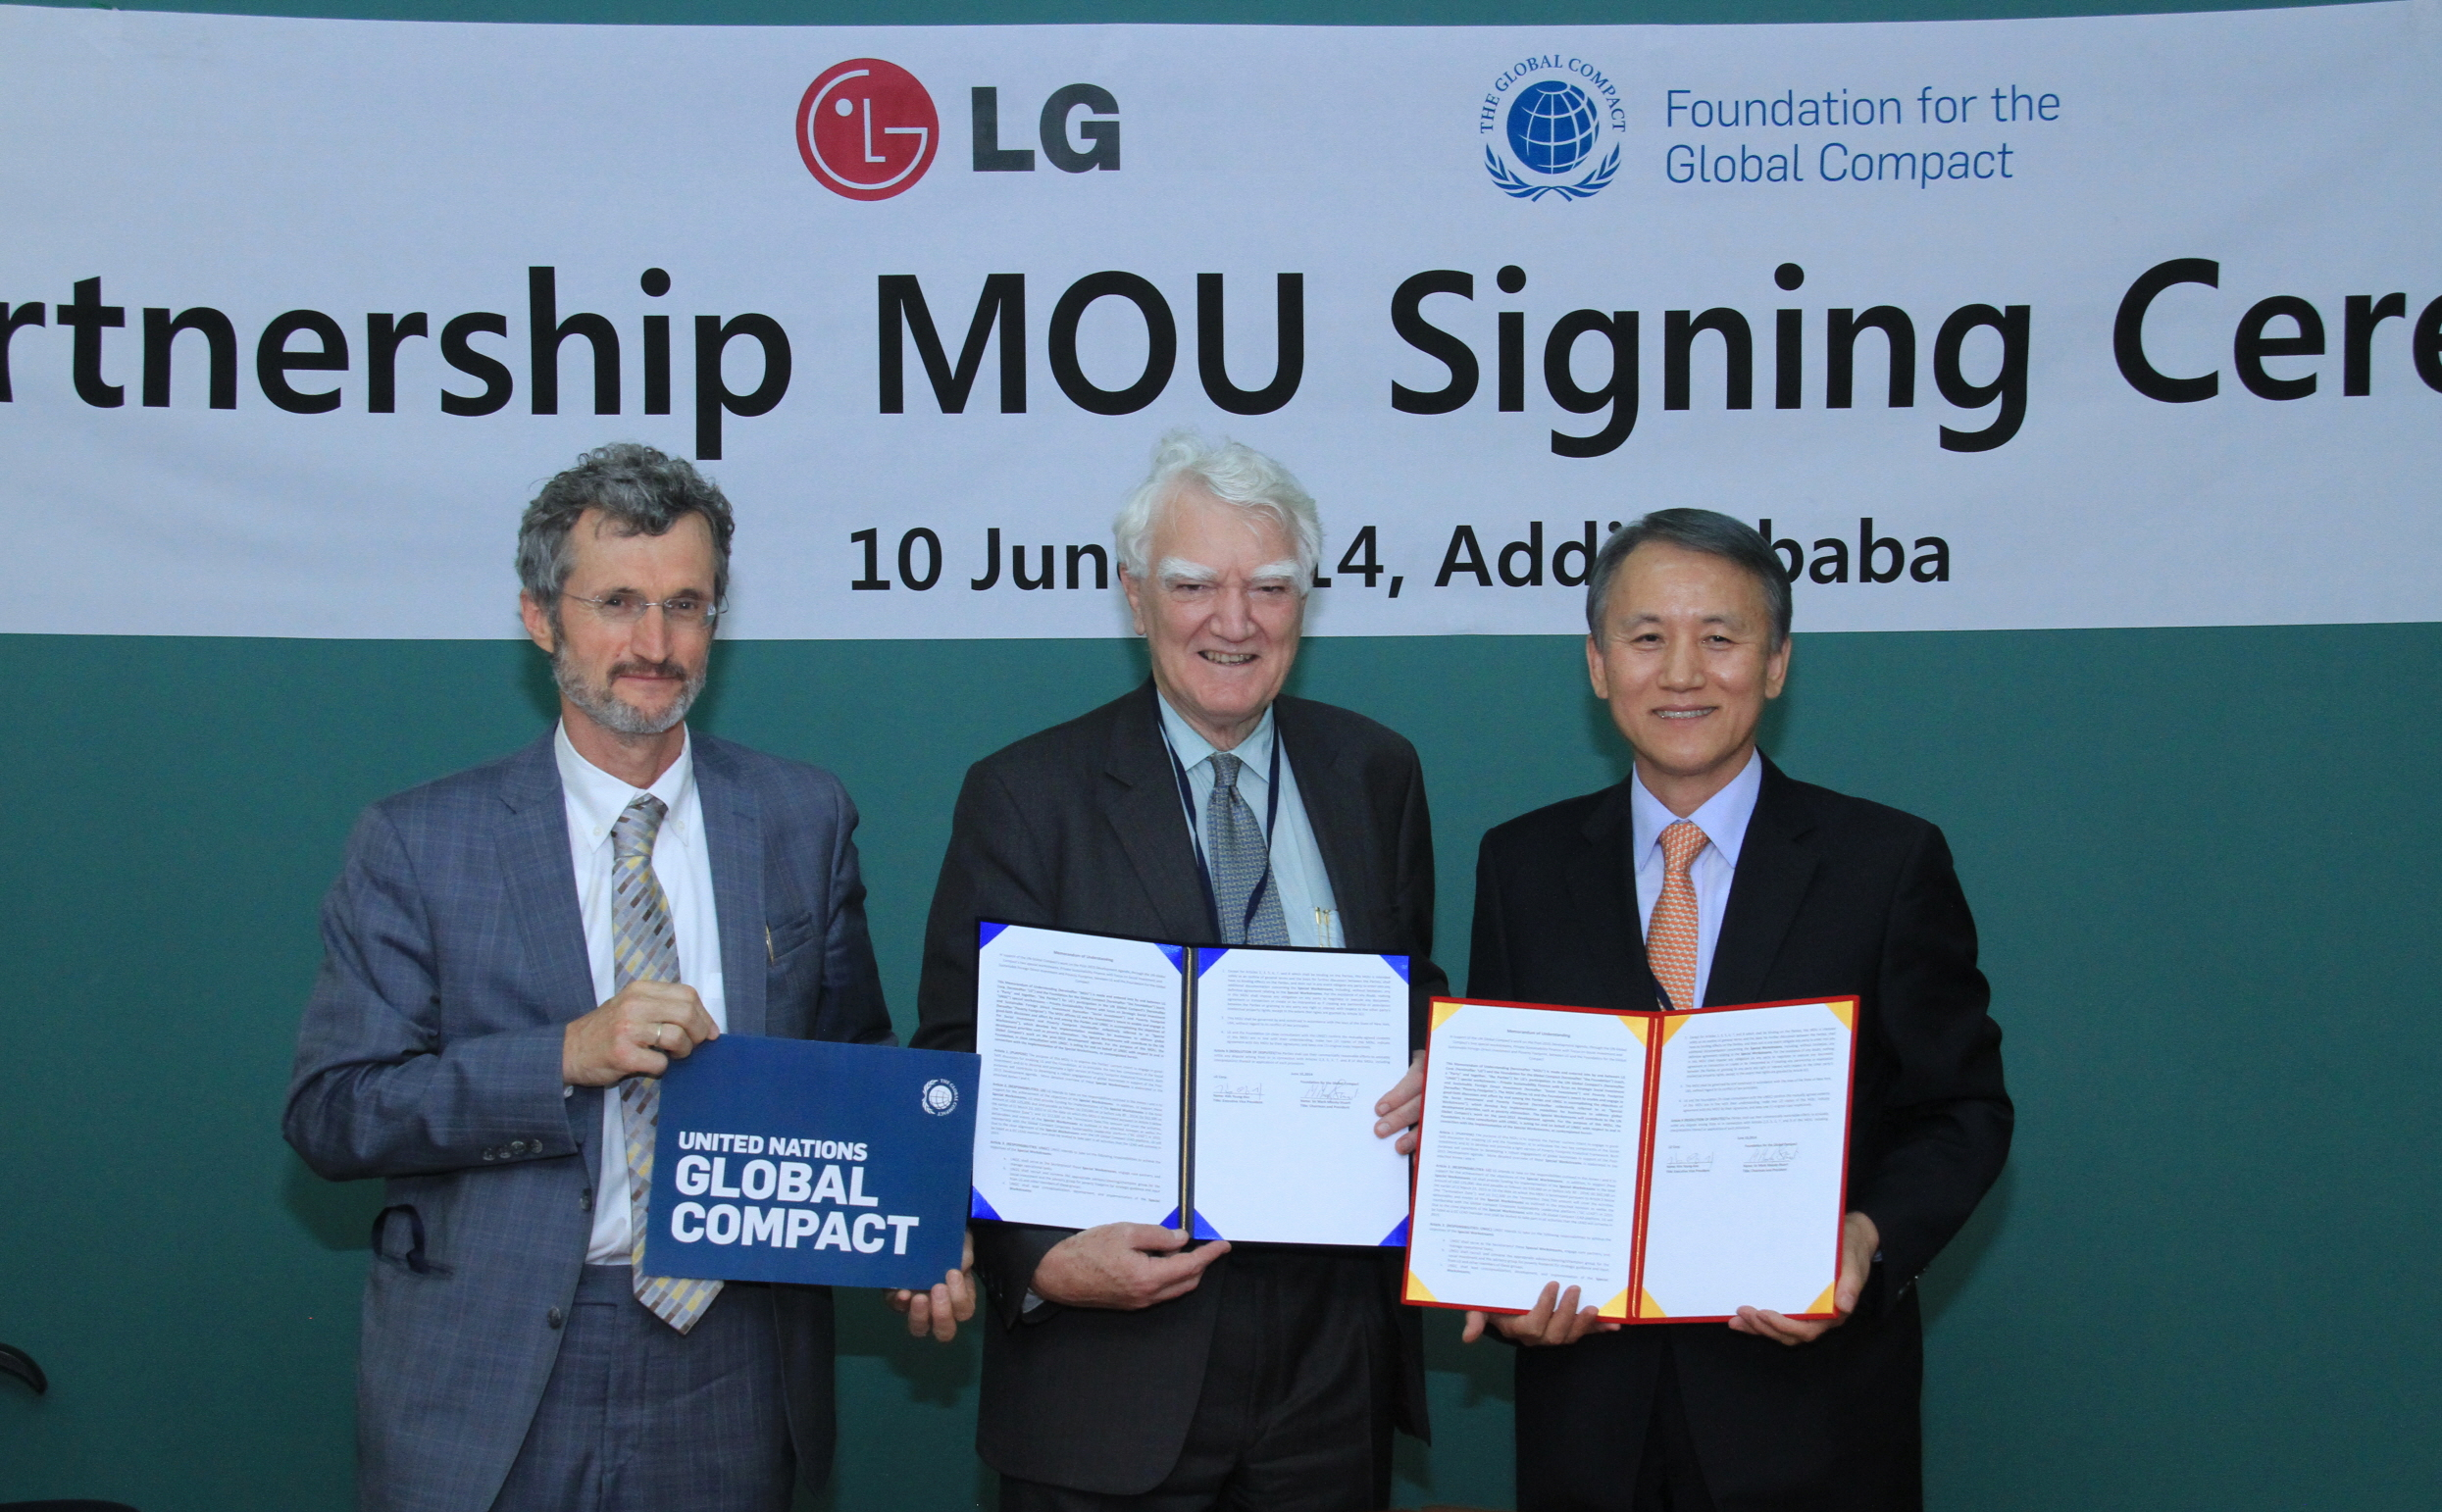 LG Corp. strengthened its collaboration with the United Nations Global Compact (UNGC) to support its work on the Post-2015 Development Agenda. (image credit: LG Corp.)